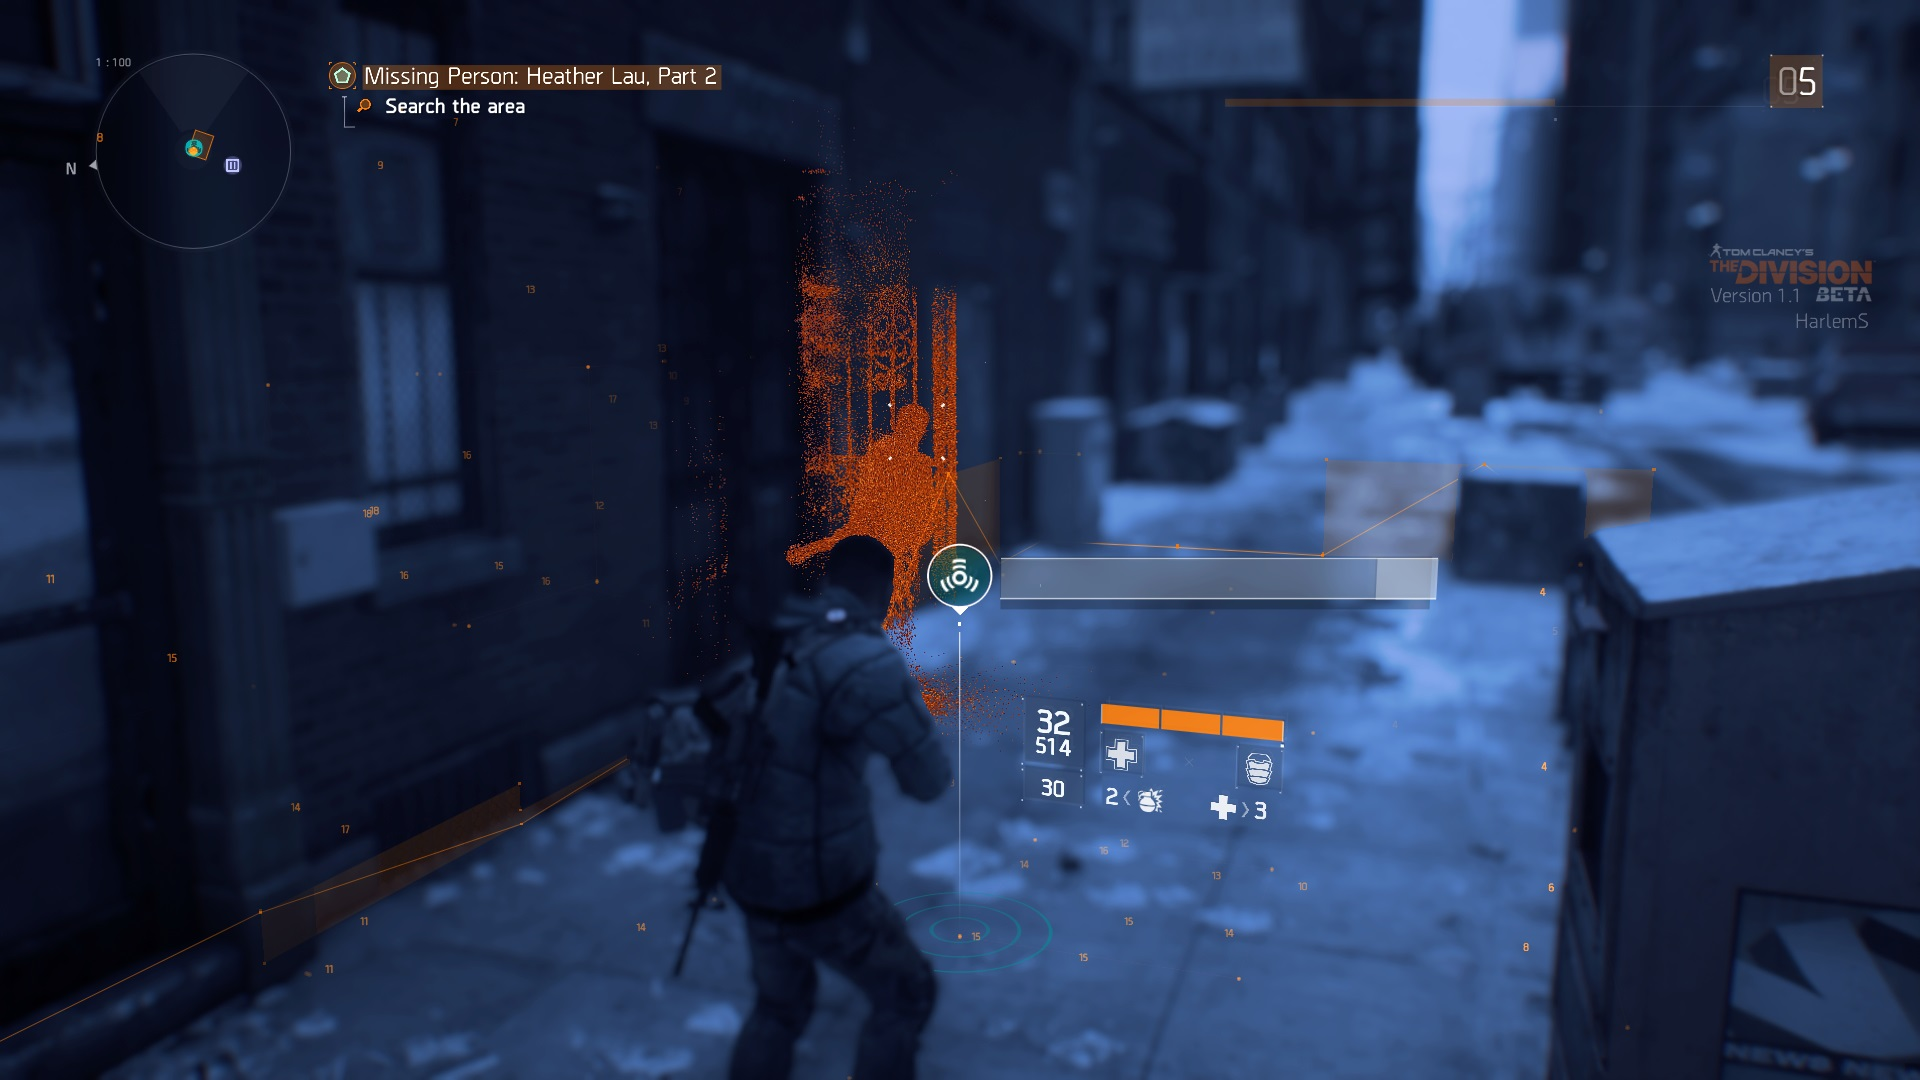 Tom Clancy's The Division - PS4 - IGN Asia | IGN Asia